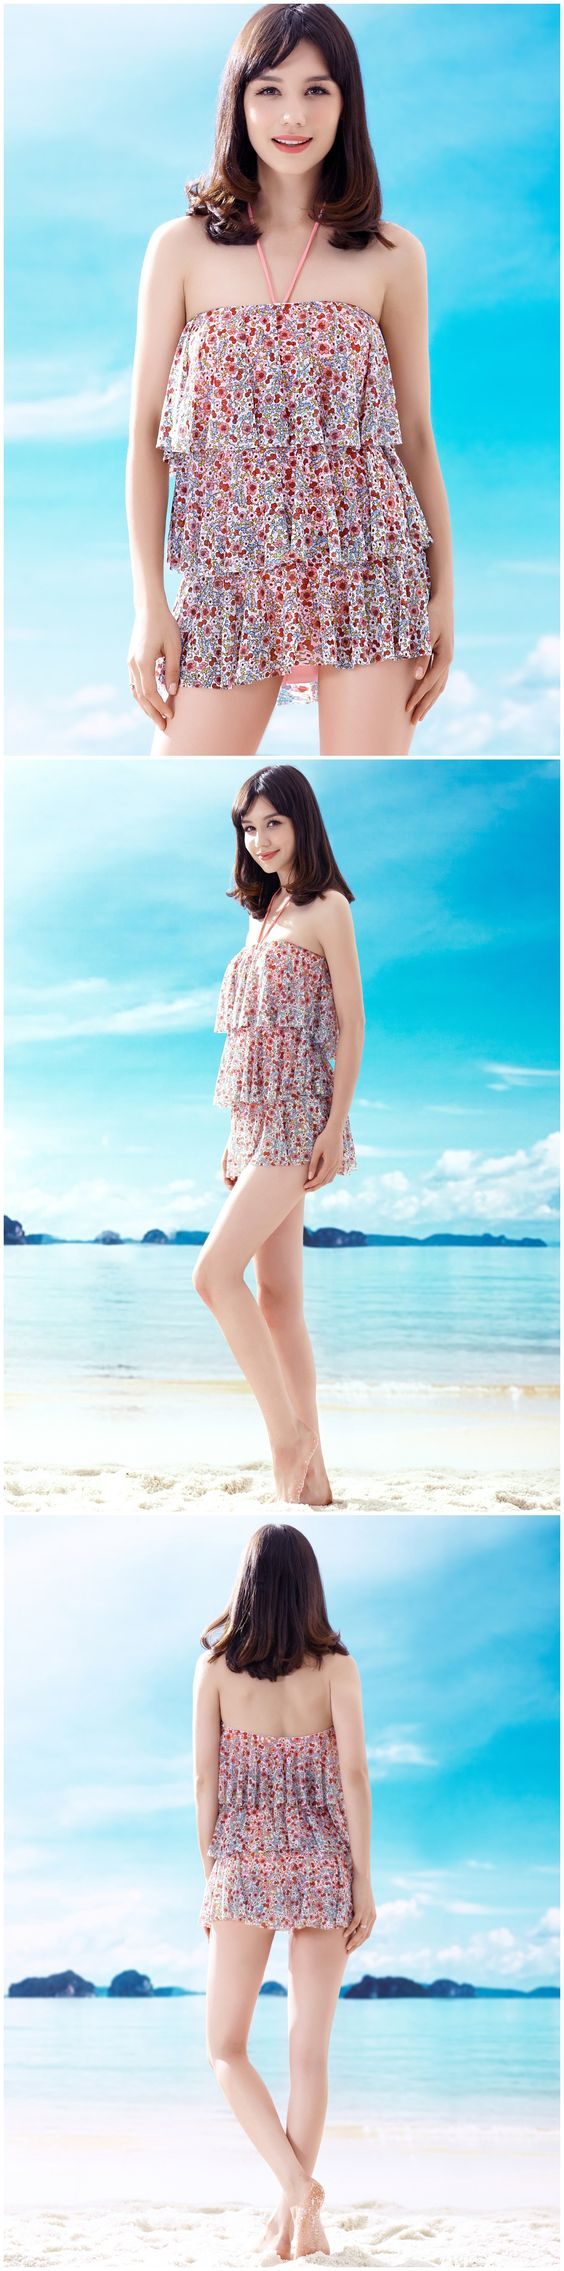 Summer Cool Lovely Floral Print Cake Shape Strapless Halter Neck Padded Push Up One Piece Conjoined Skirted Swimsuits Bathing Suit http://www.amazon.co.uk/s/ref=sr_il_ti_merchant-items?me=AWH6KY5XWWO07&rh=i%3Amerchant-items&ie=UTF8&qid=1433385992&lo=merchant-items